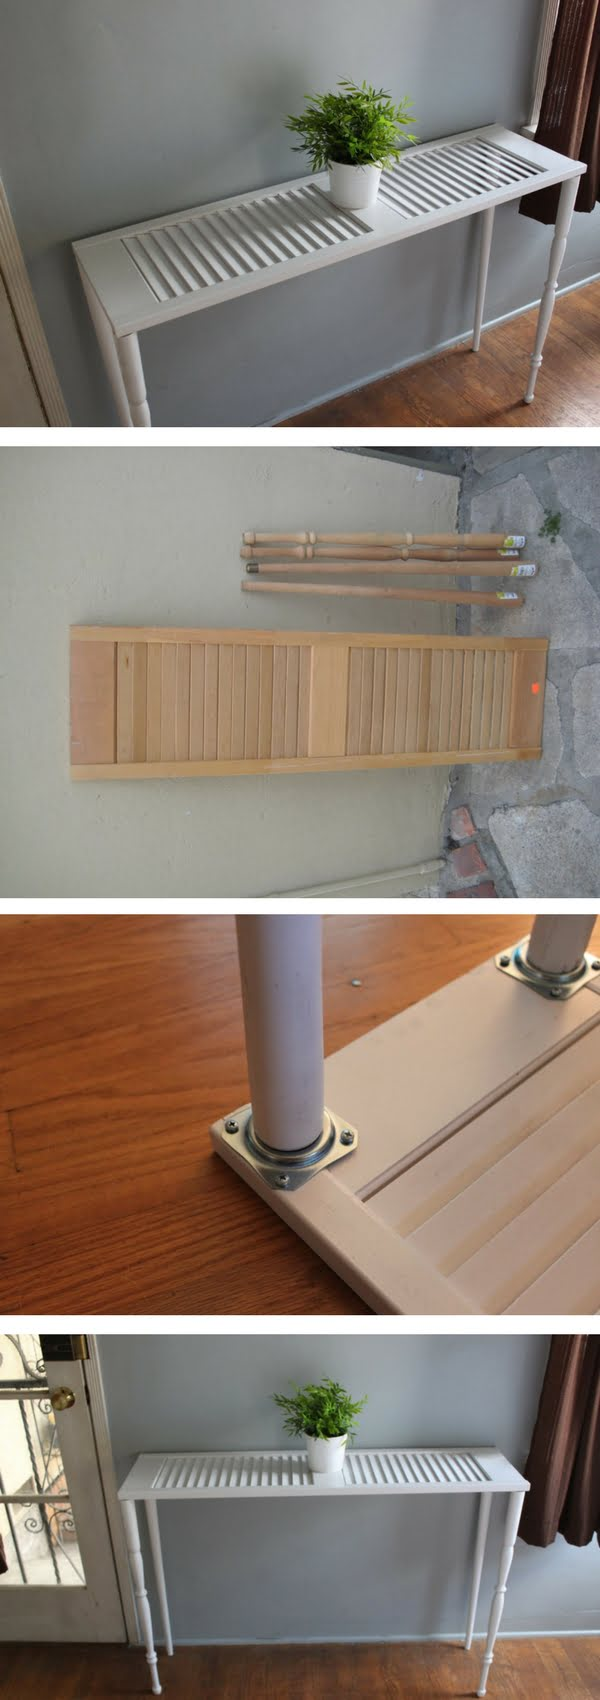 Check out how to build a DIY side table from an old shutter